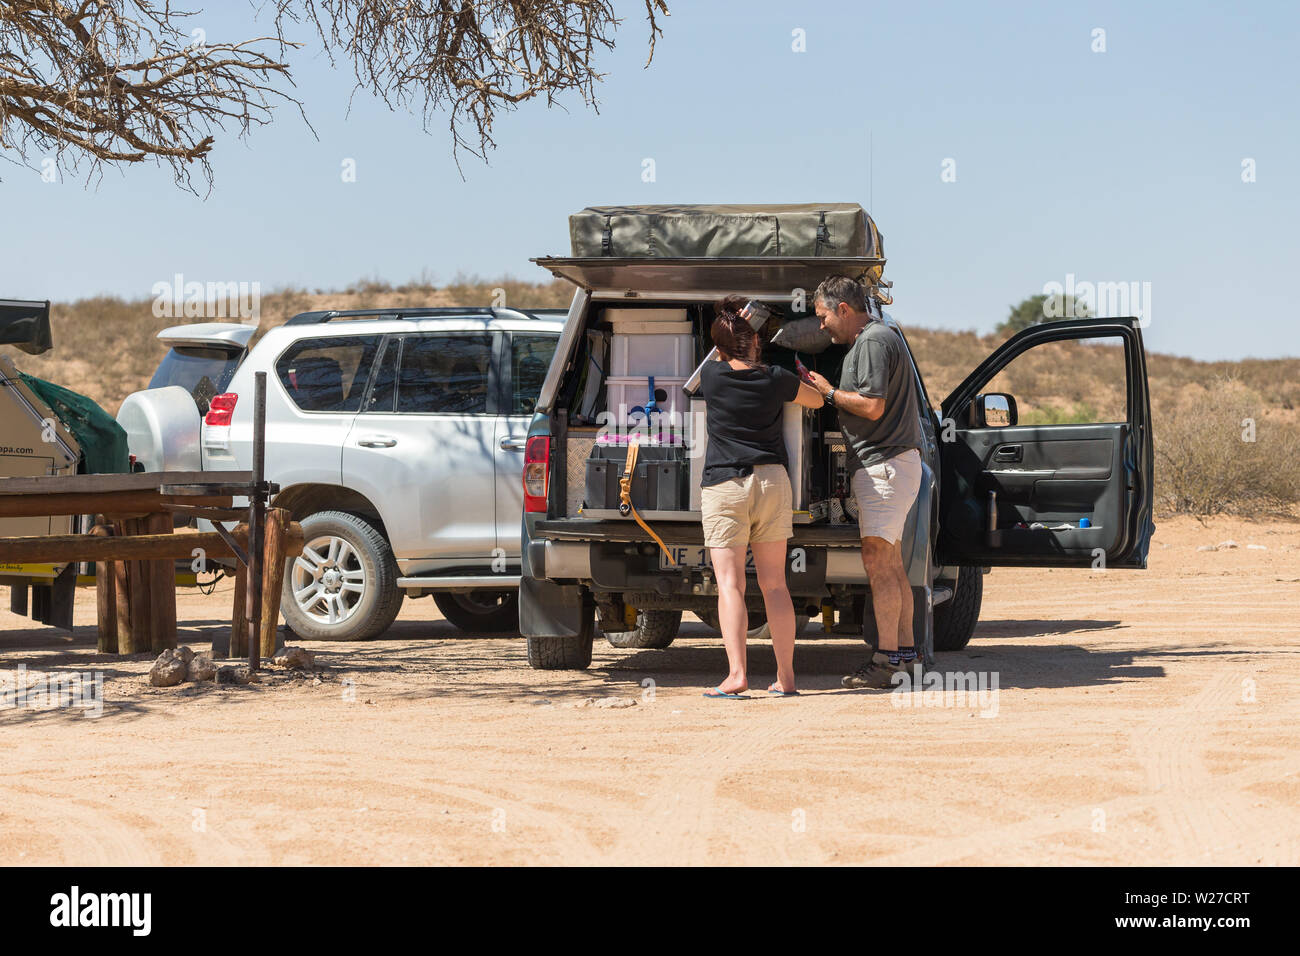 Couple Or Man And Woman Unpacking Their 4x4 Camping Off Road Overland Vehicle At A Camp Site Picnic Area In Kgalagadi Transfrontier Park South Africa Stock Photo Alamy